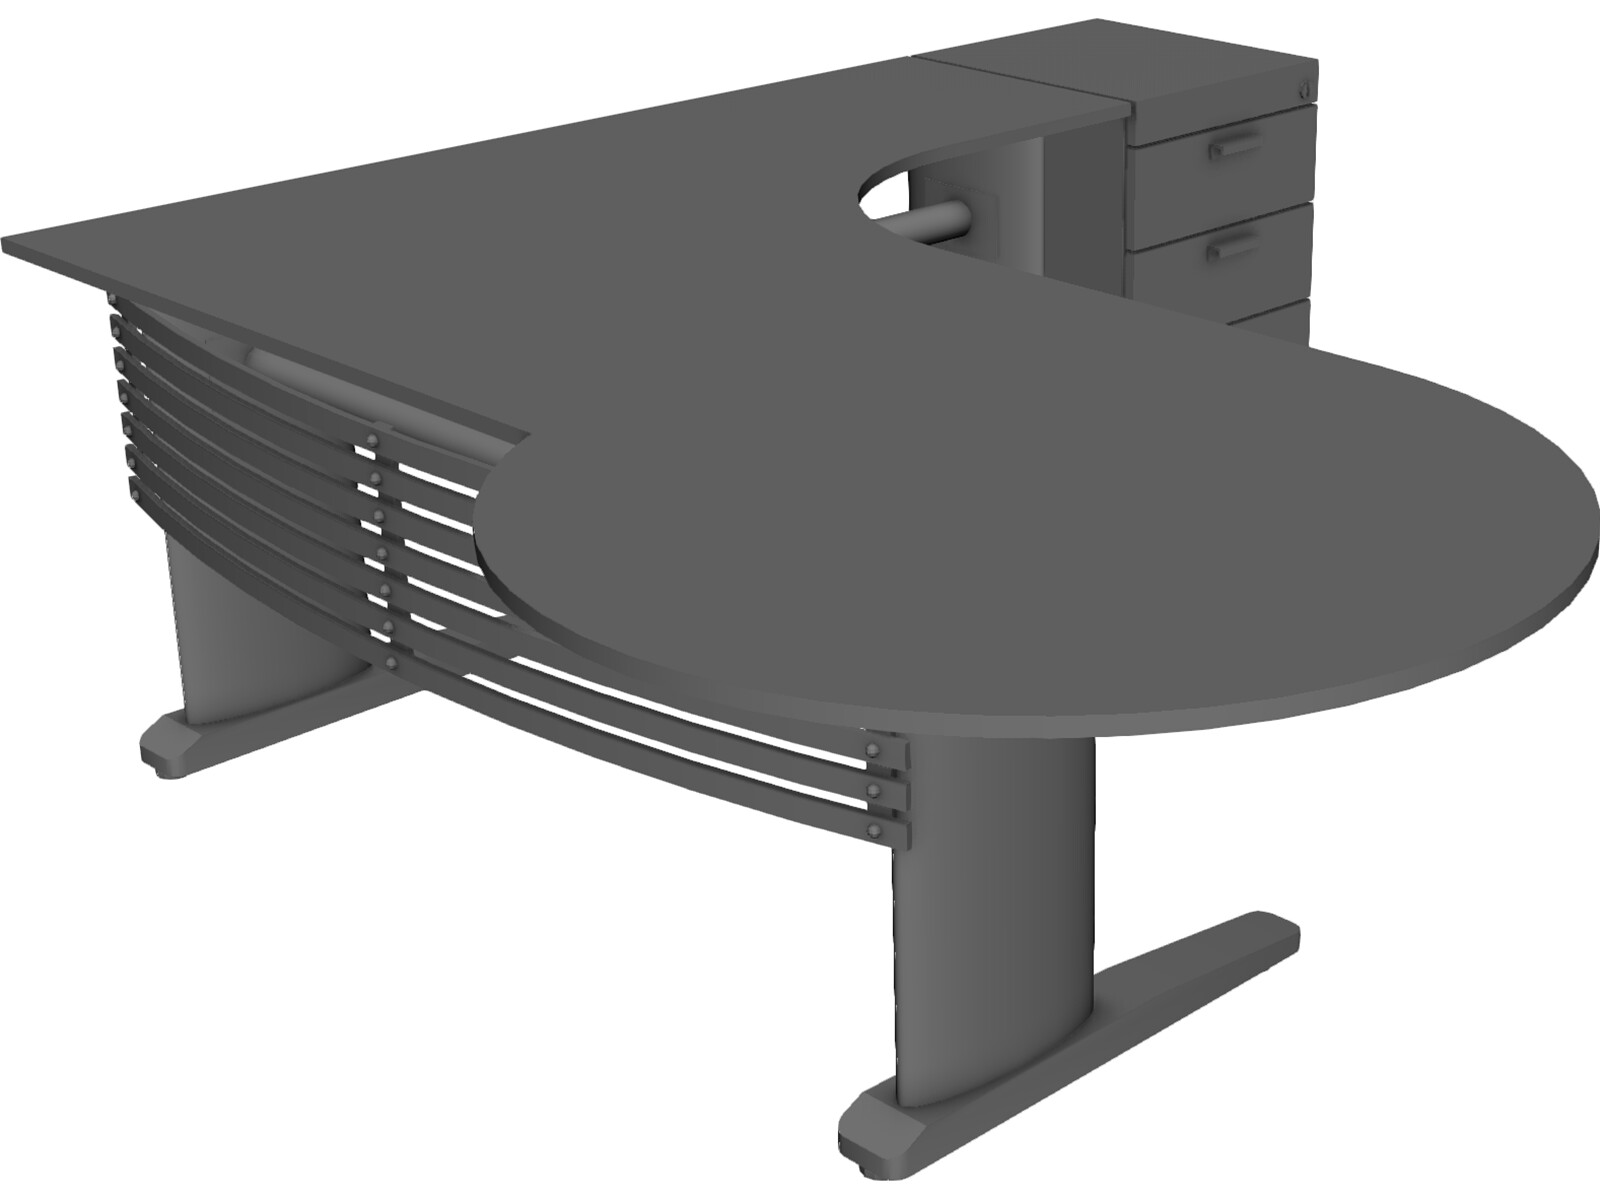 Desk with Extention